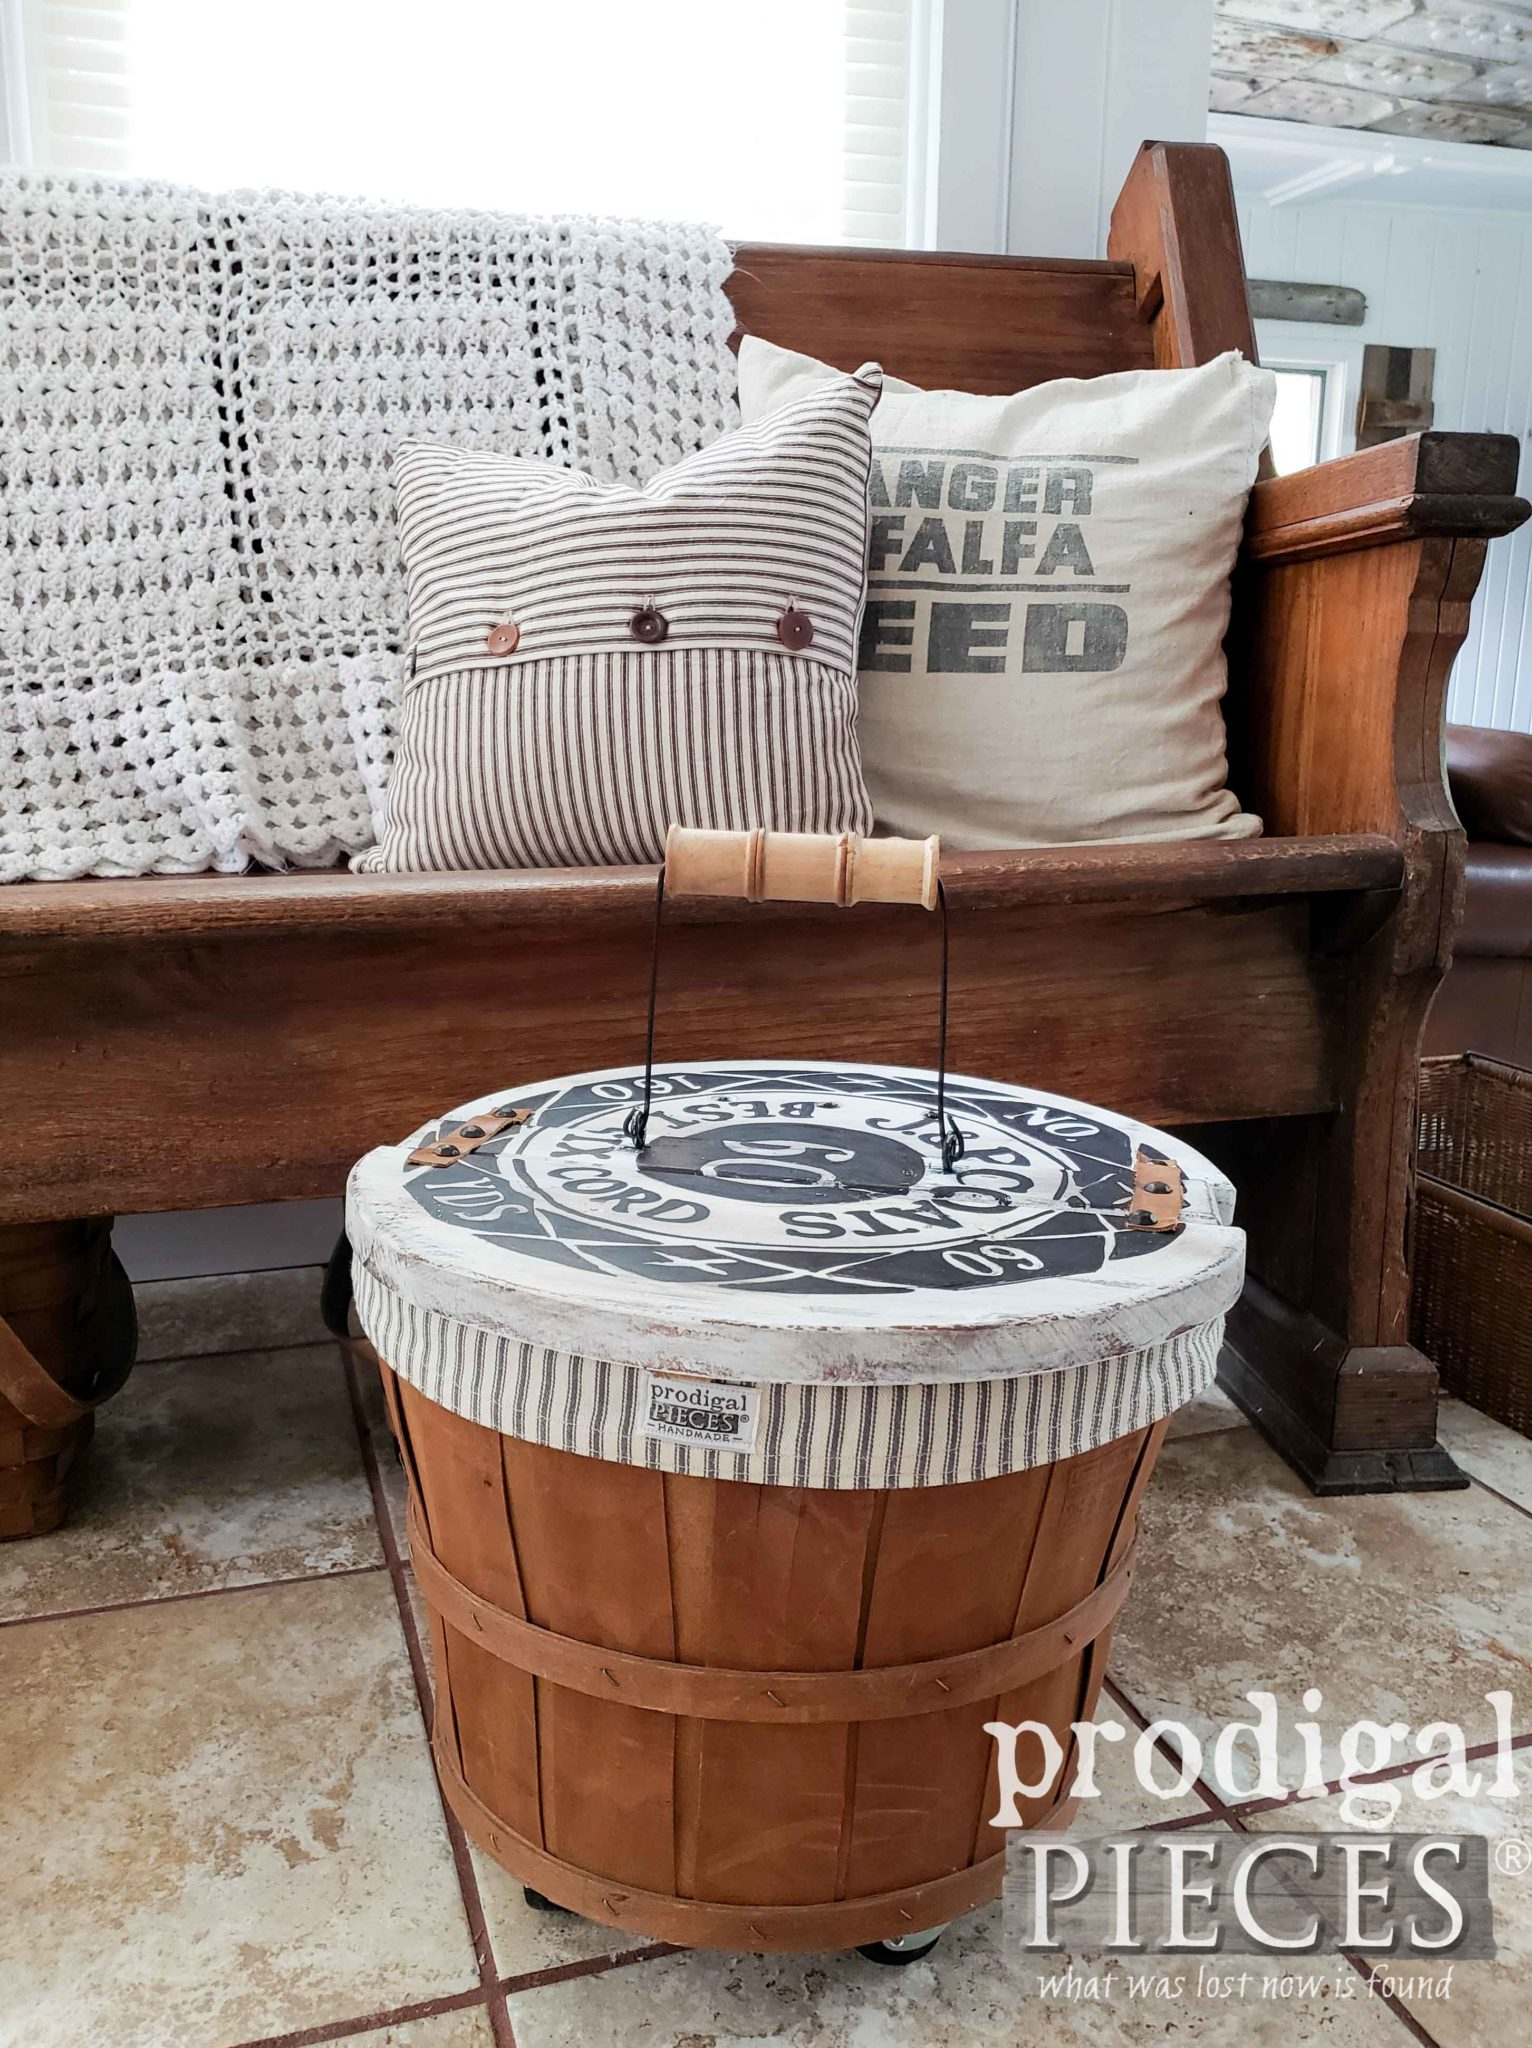 Farmhouse Style Sewing Basket with Vintage Spool Typography by Larissa of Prodigal Pieces | prodigalpieces.com